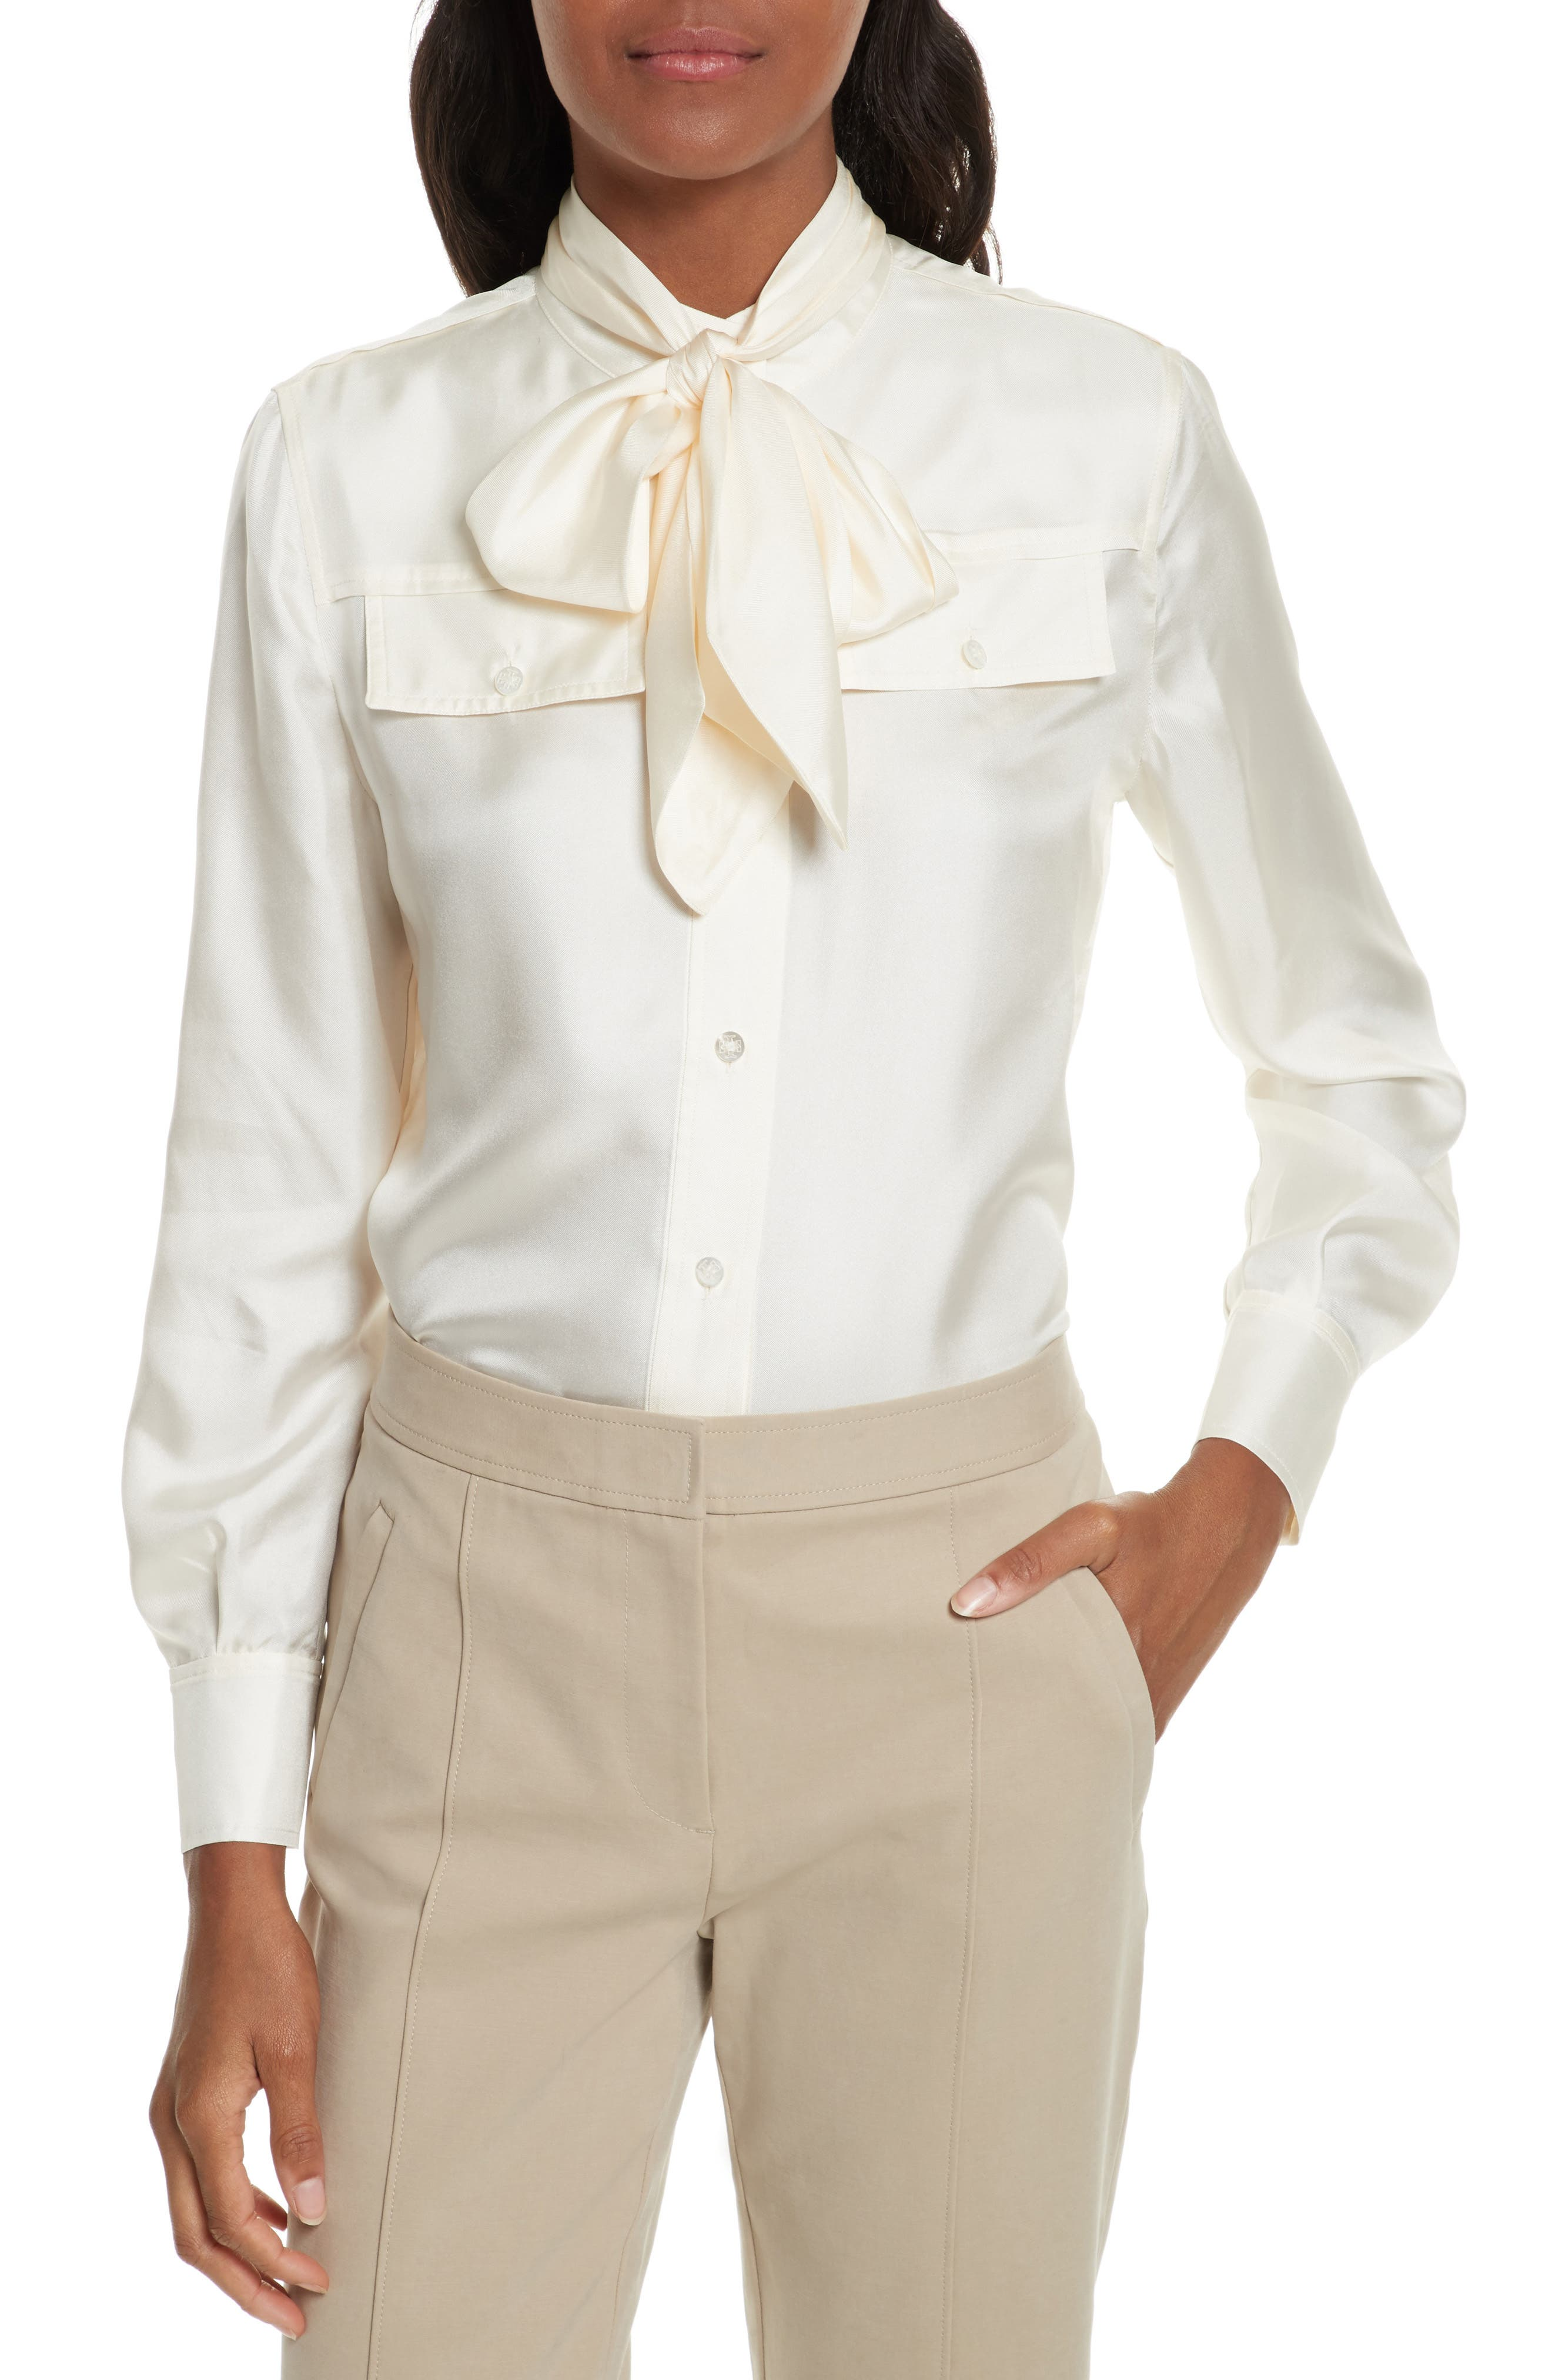 TORY BURCH,                             Holly Tie Neck Silk Blouse,                             Main thumbnail 1, color,                             904